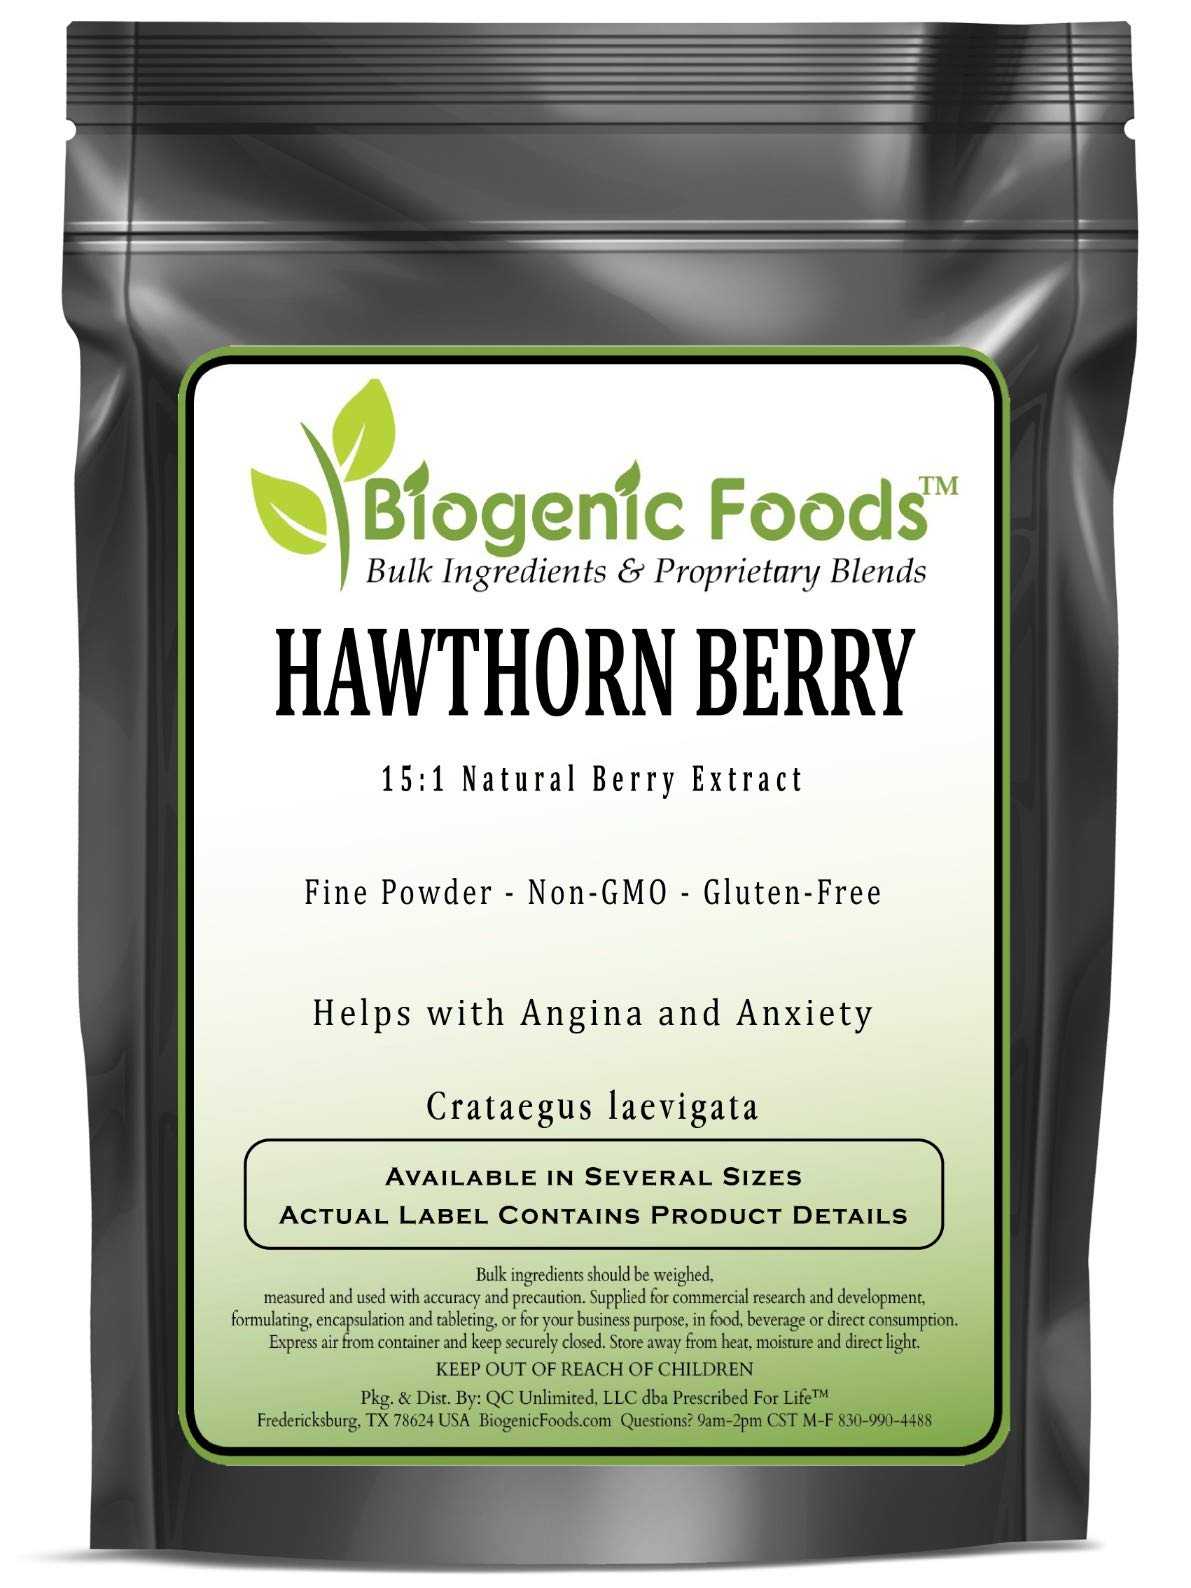 Hawthorn Berry - 15:1 Natural Berry Fine Powder Extract (Crataegus laevigata), 2 kg